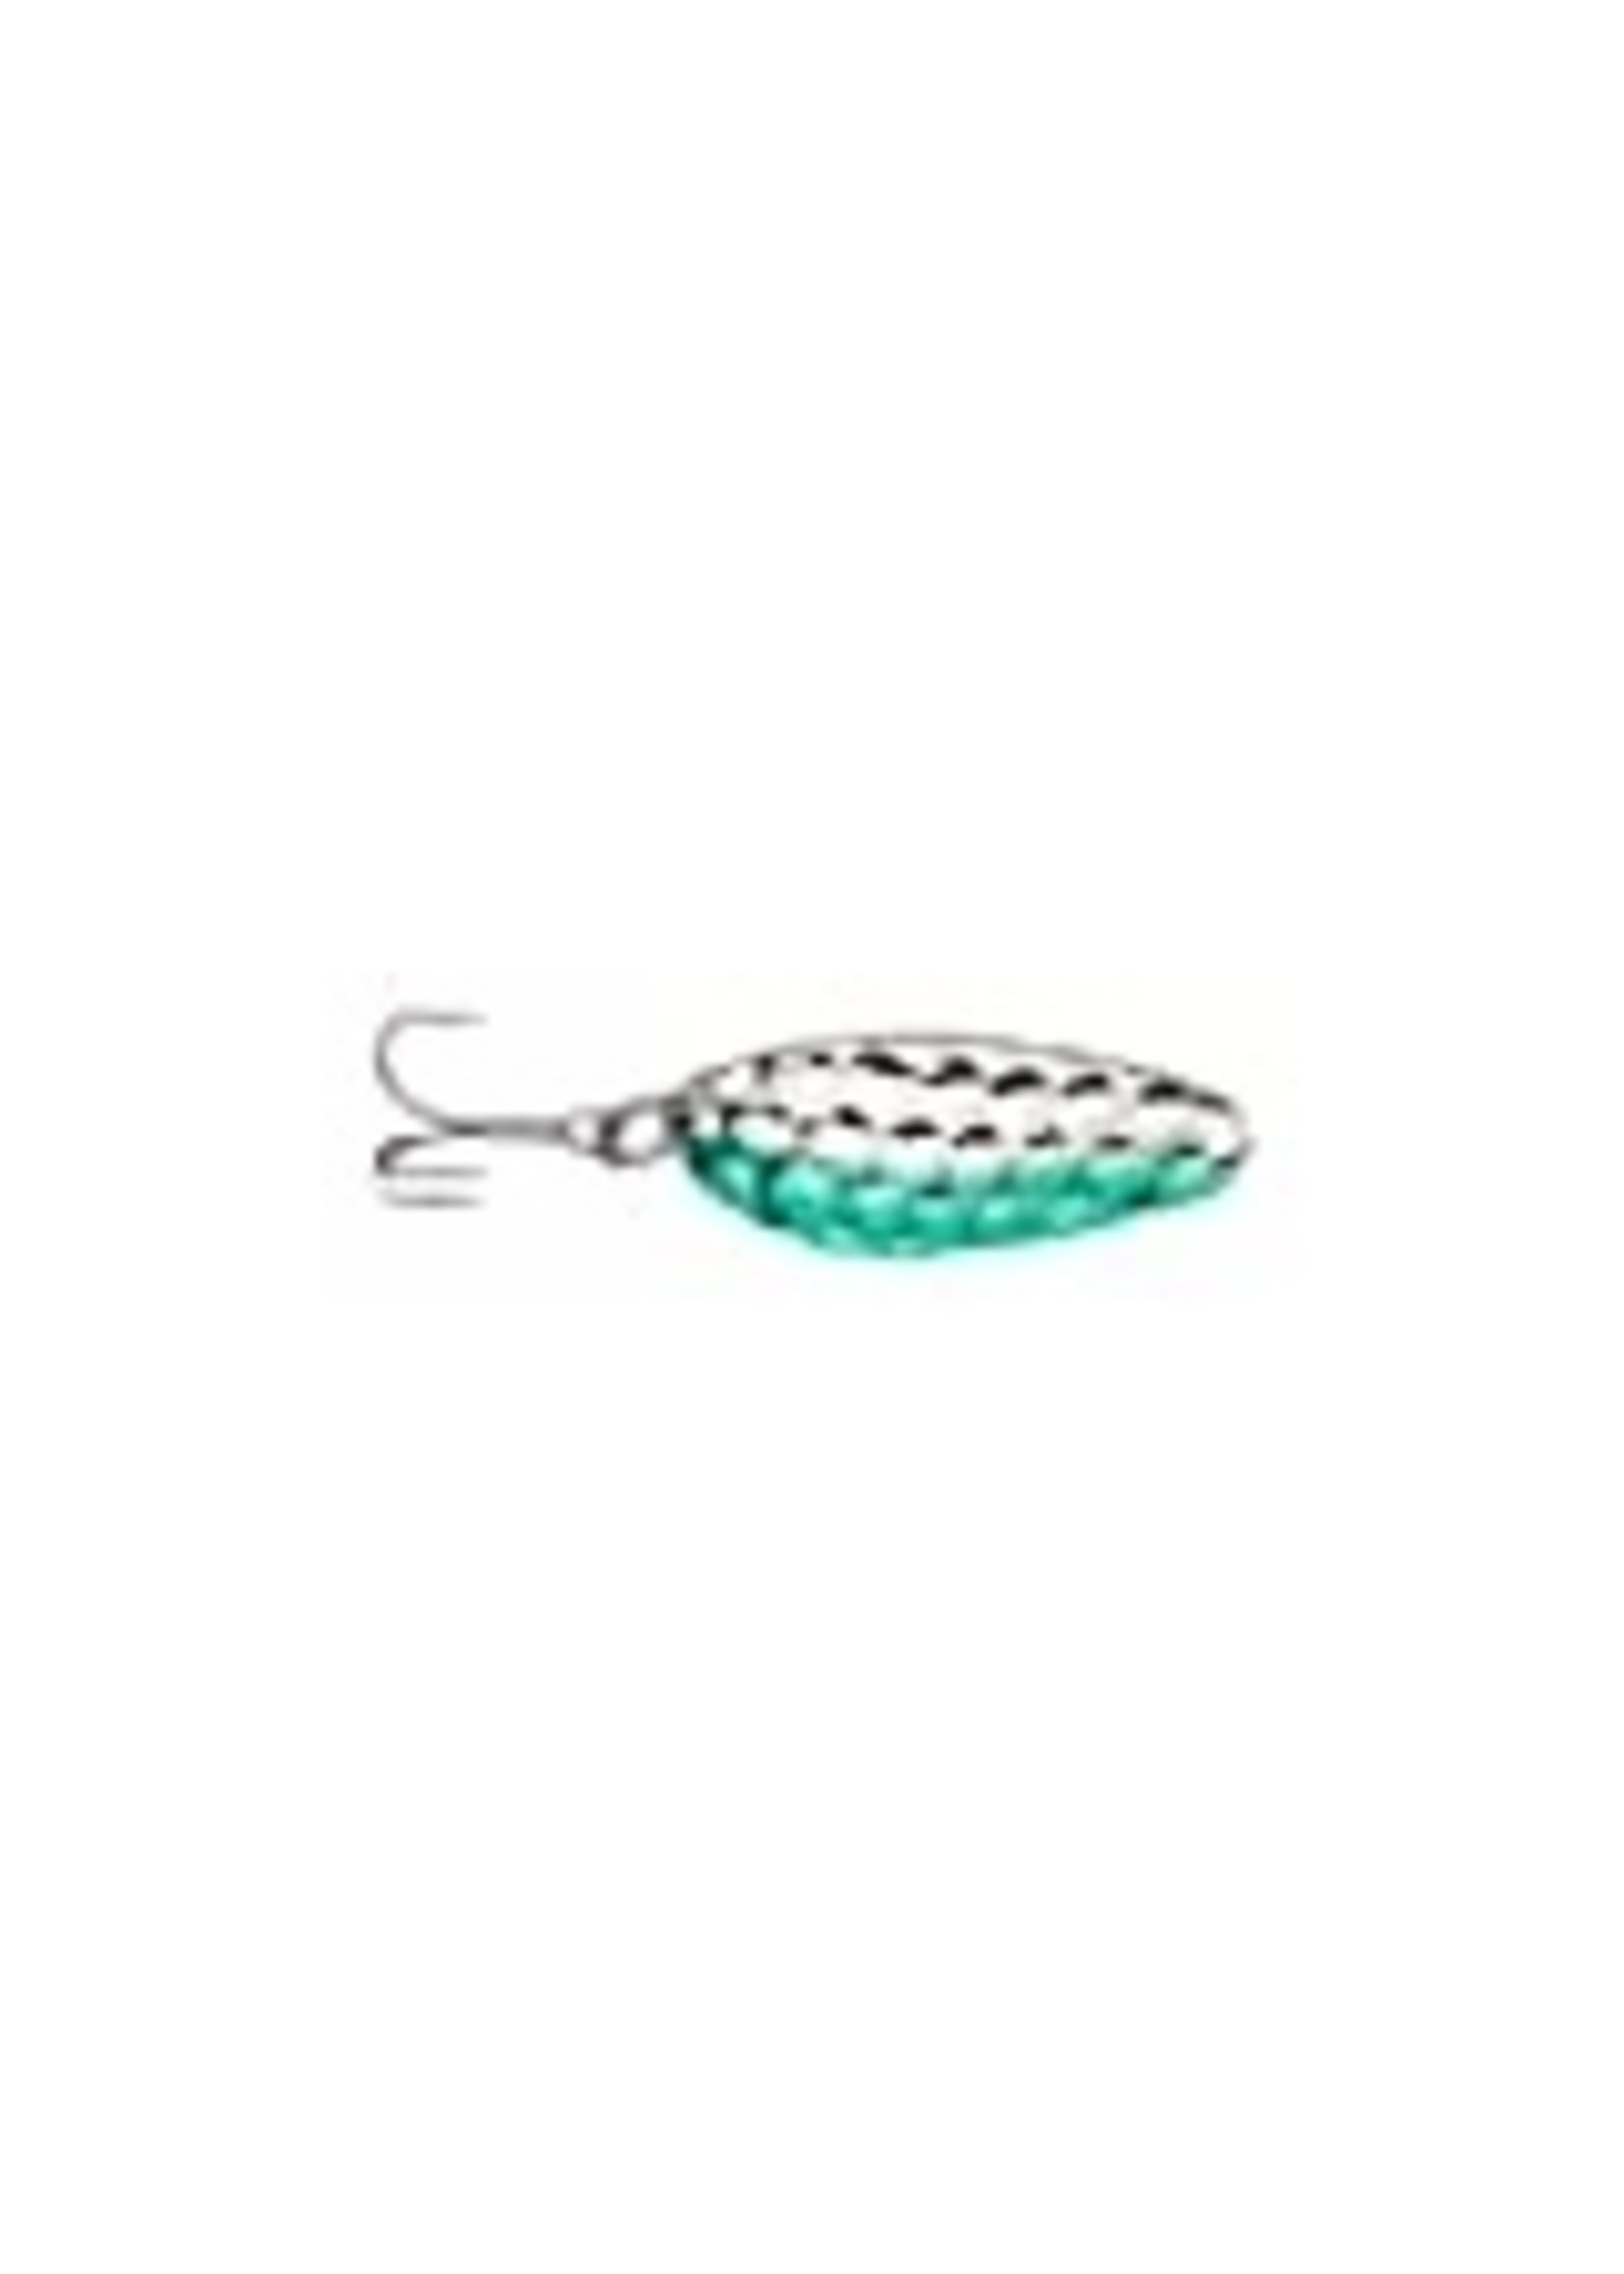 """Acme Tackle Acme C200/HNG Little Cleo Spoon, 2 1/8"""", 2/5oz, Hammered Nickel &"""